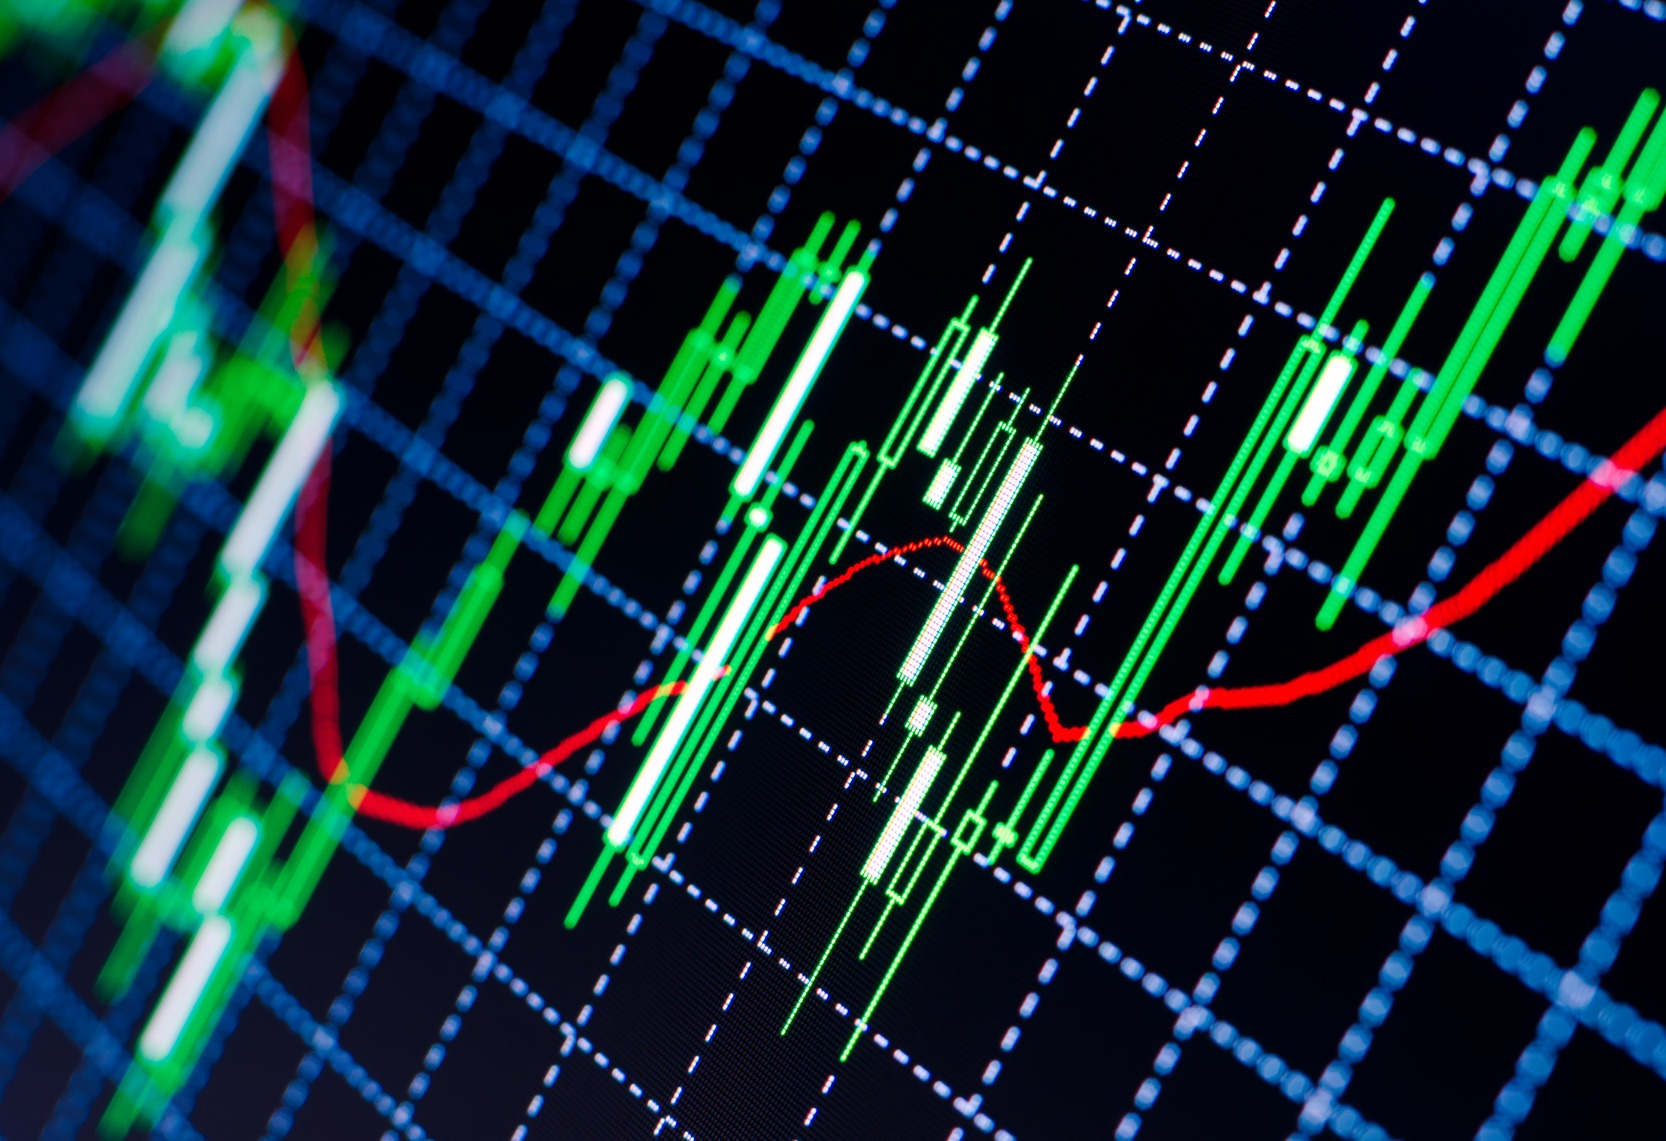 Forex market charts on computer display